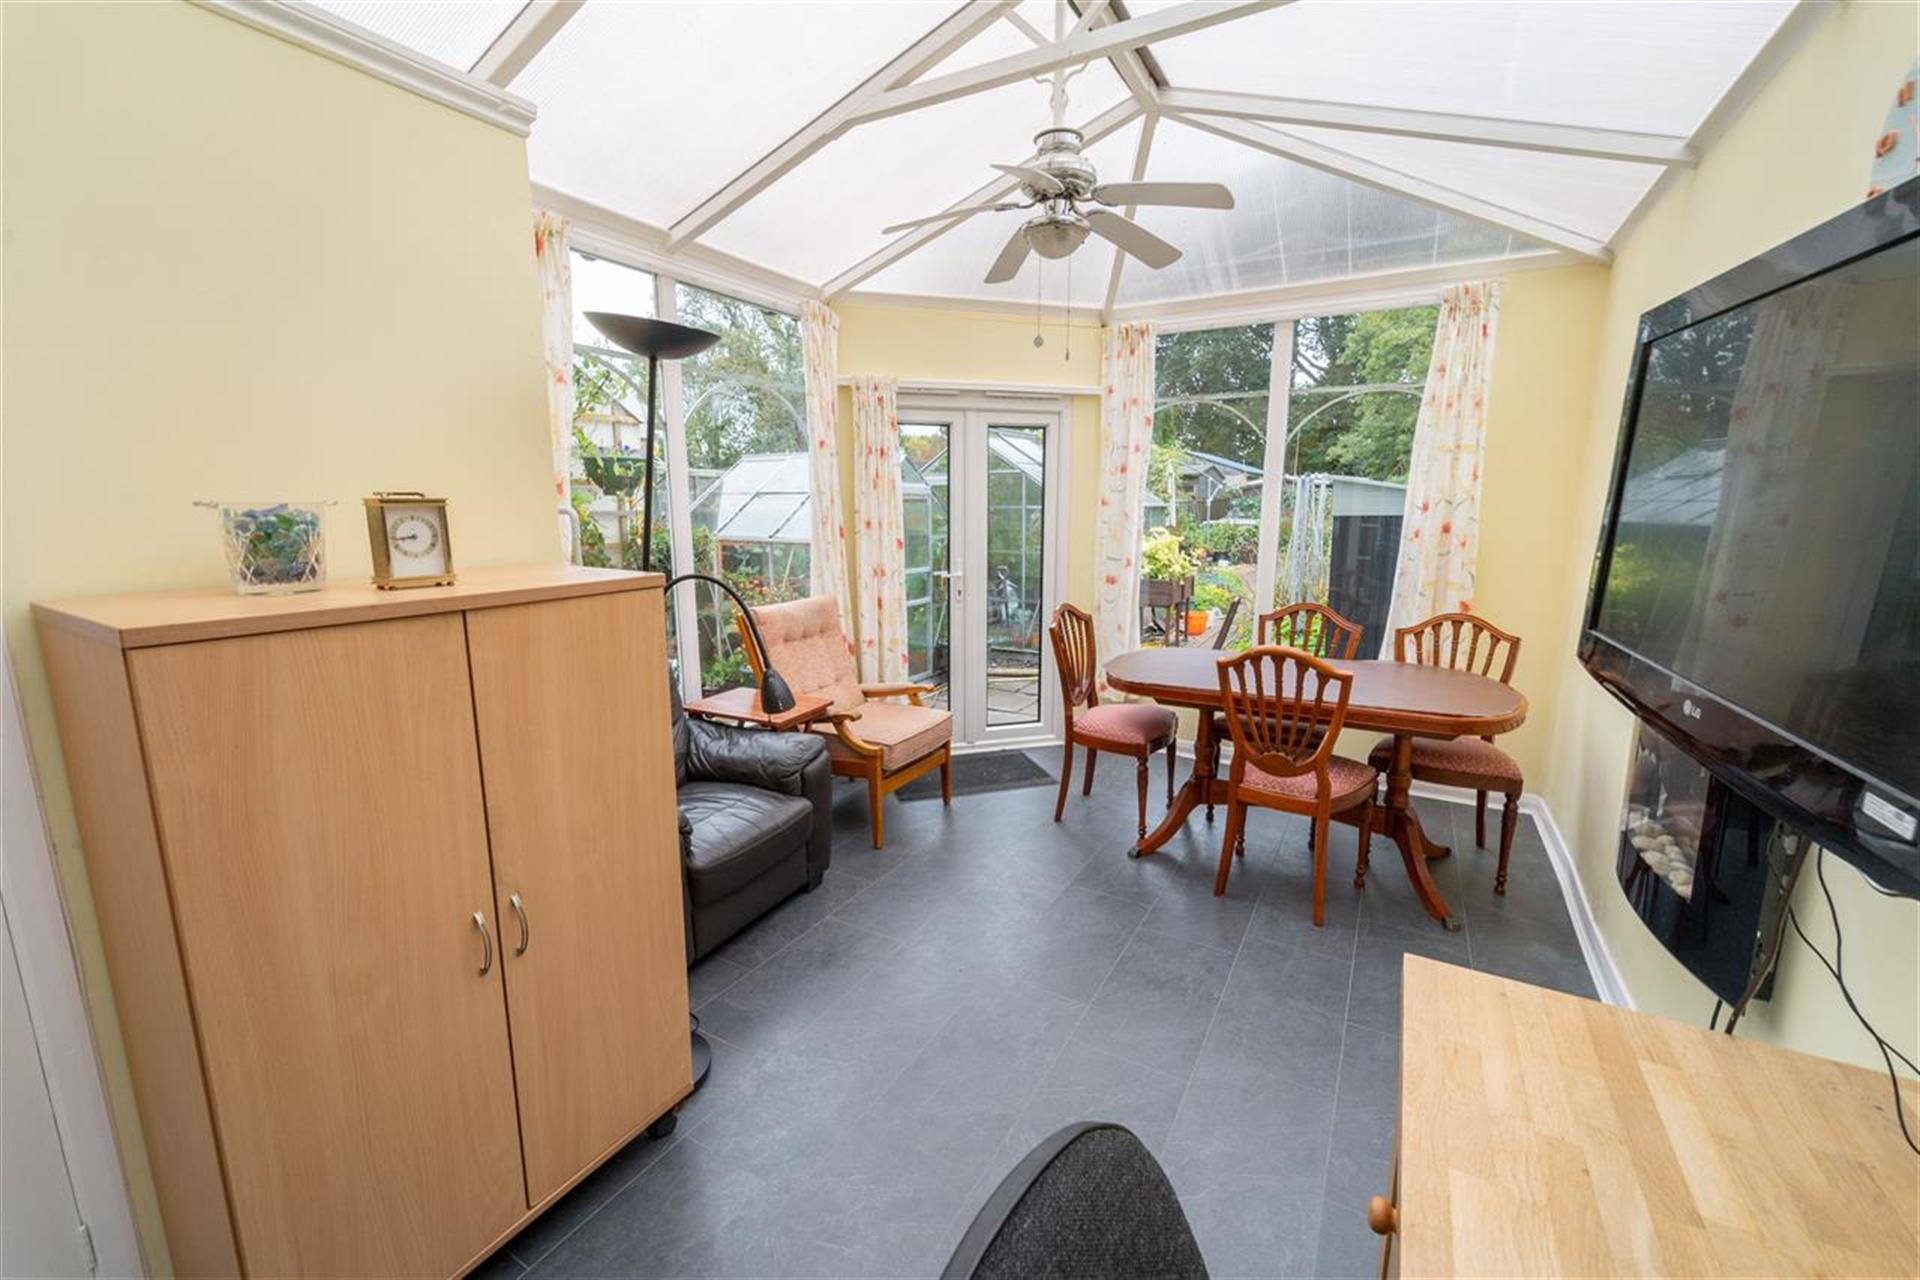 3 Bedroom Semi-detached House For Sale - Conservatory